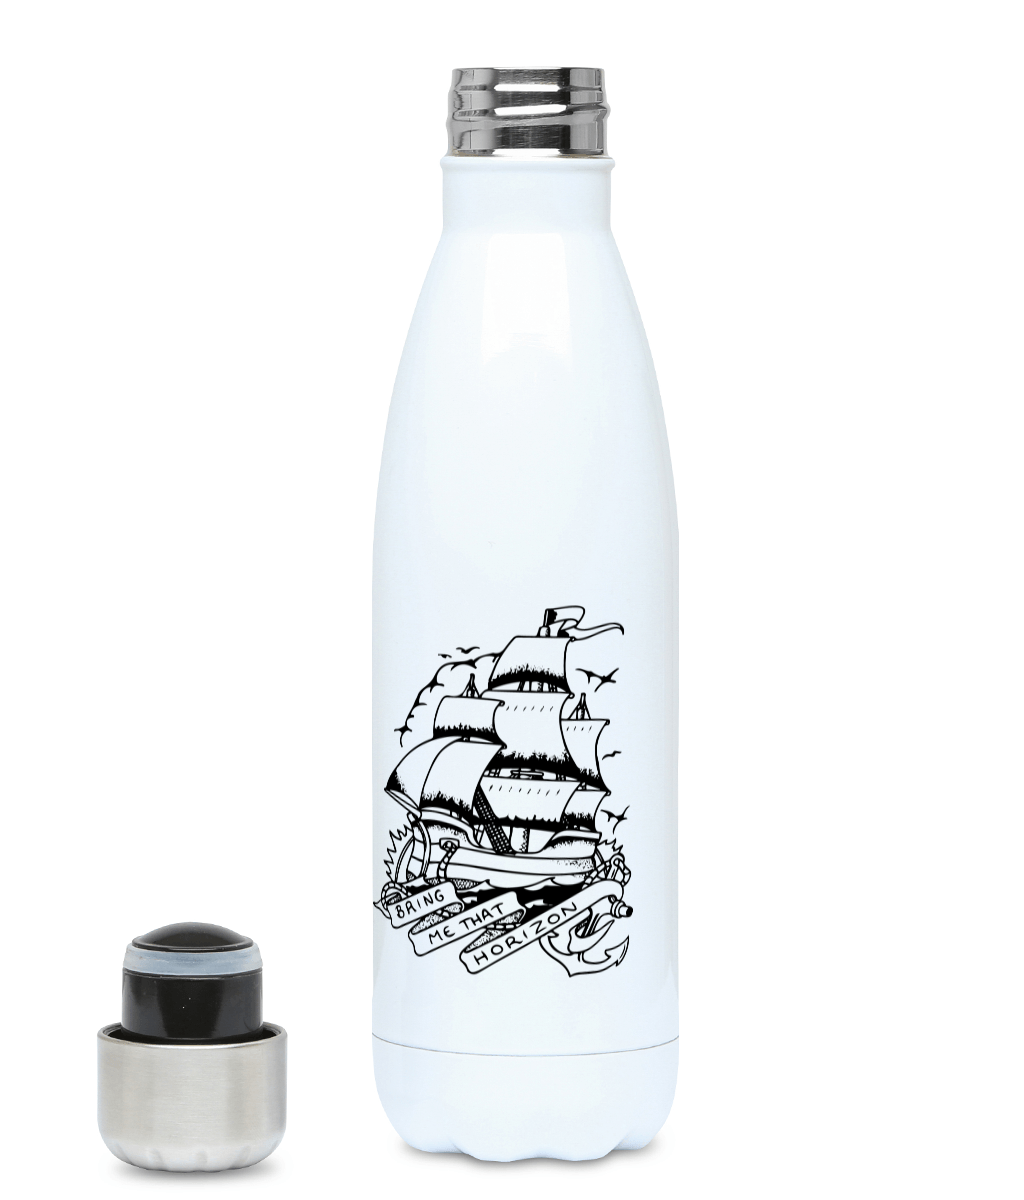 Bring me that horizon - 500ml Water Bottle, Suggested Products, Pen and Ink Studios - Pen and Ink Studios